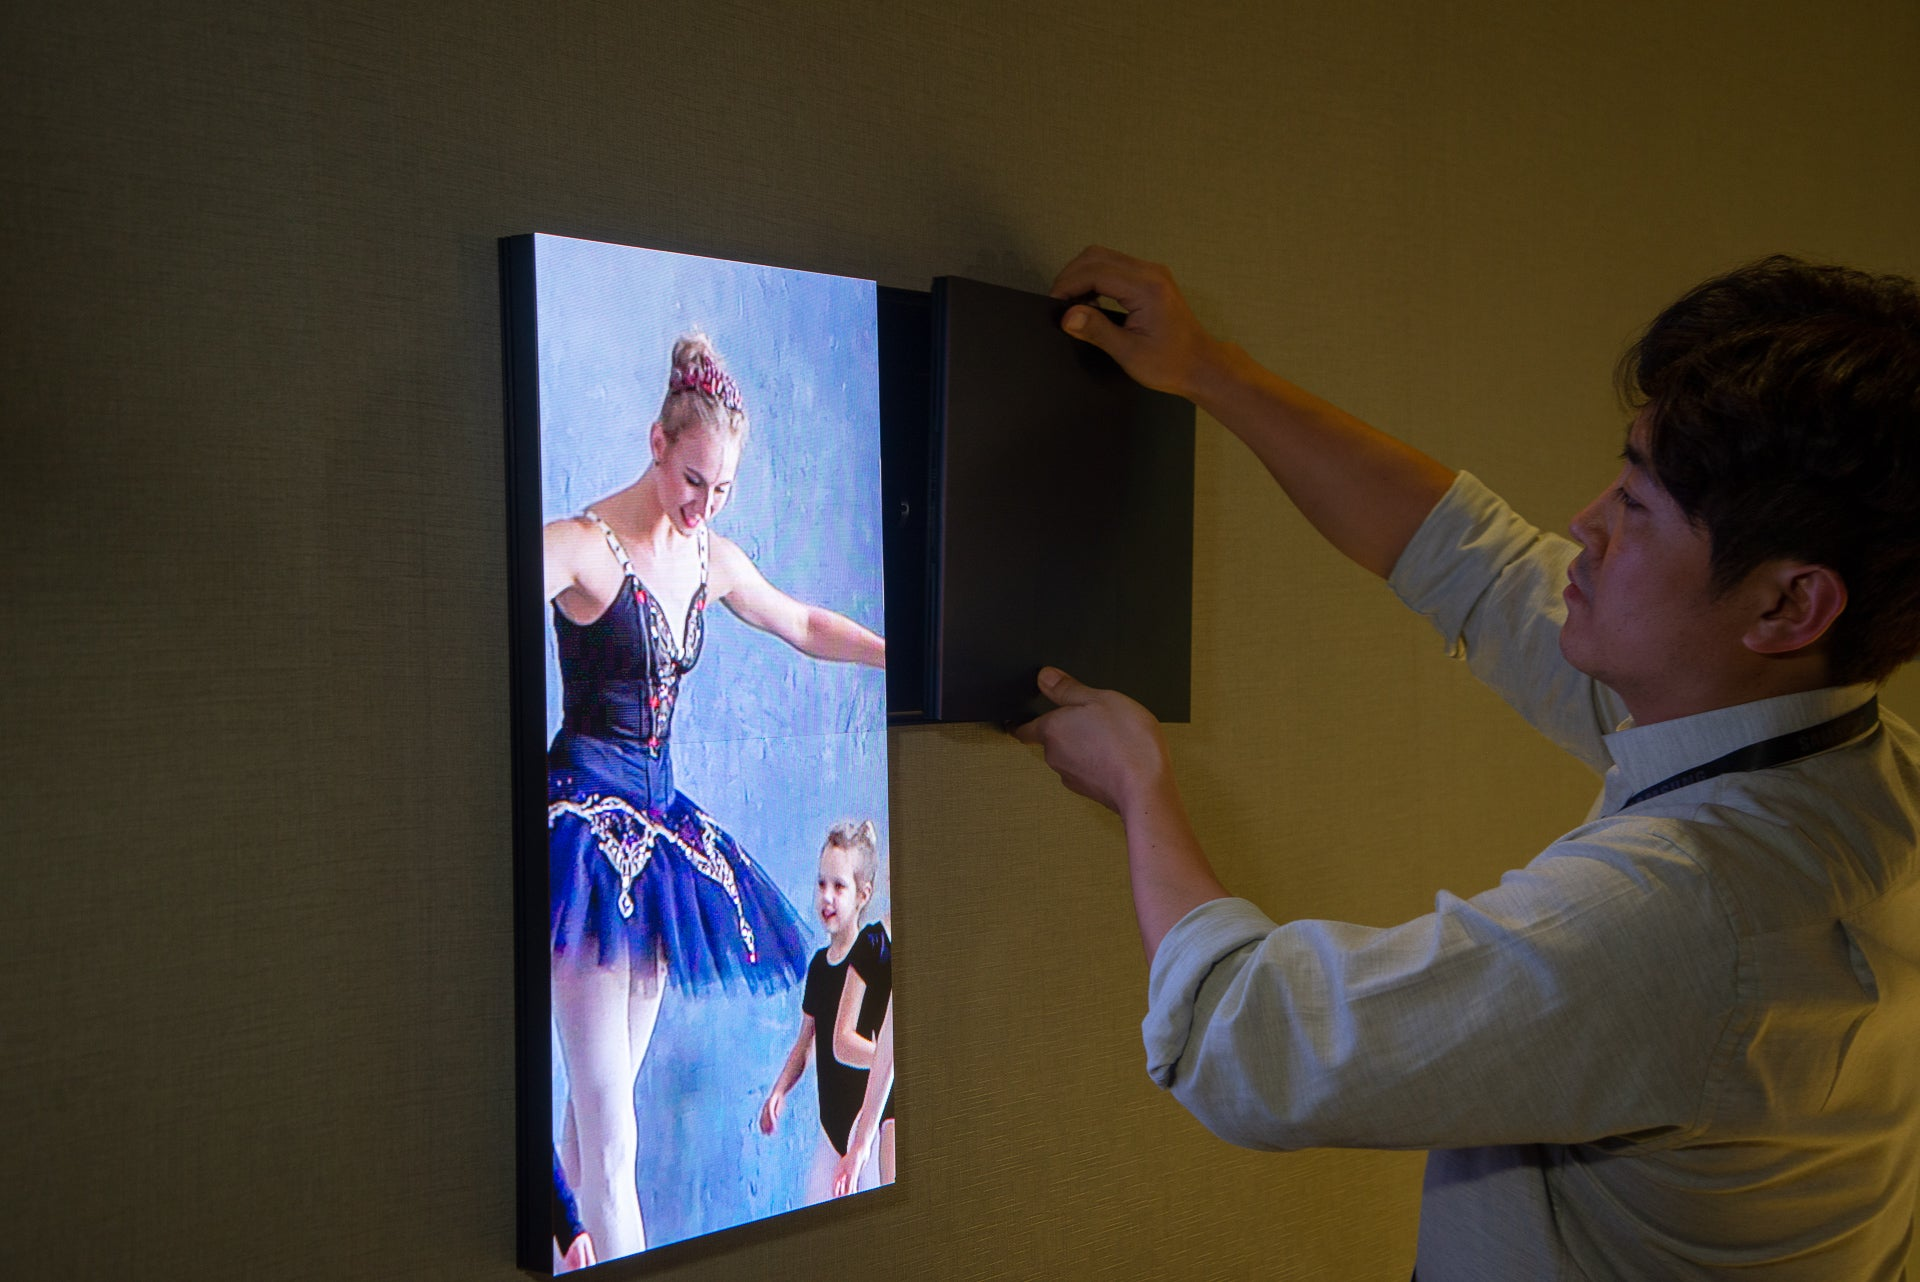 Samsung Microled Modular Tvs Get One Step Closer To The